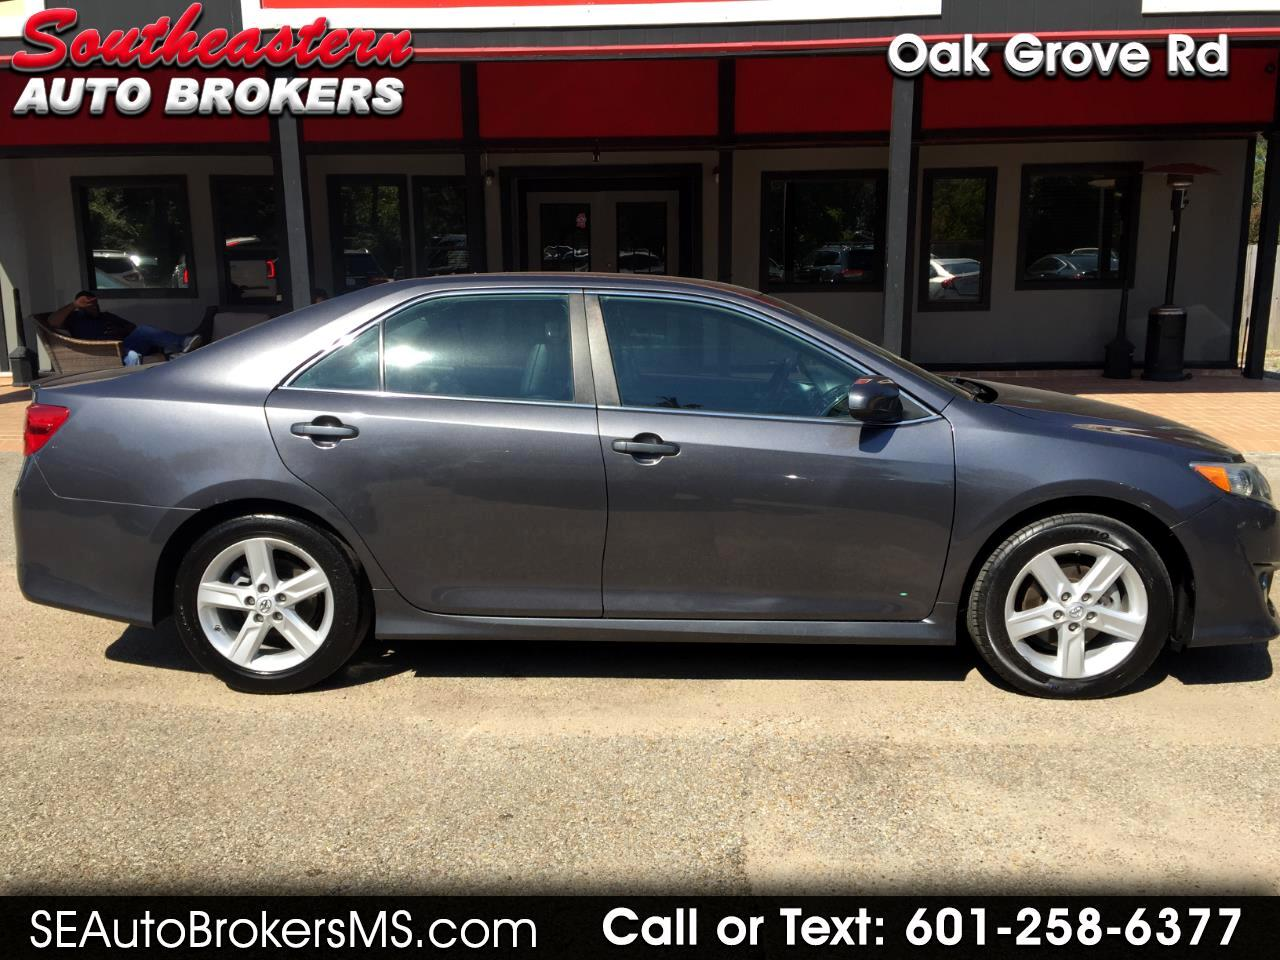 Toyota Camry 2014.5 4dr Sdn I4 Auto SE Sport (Natl) 2014